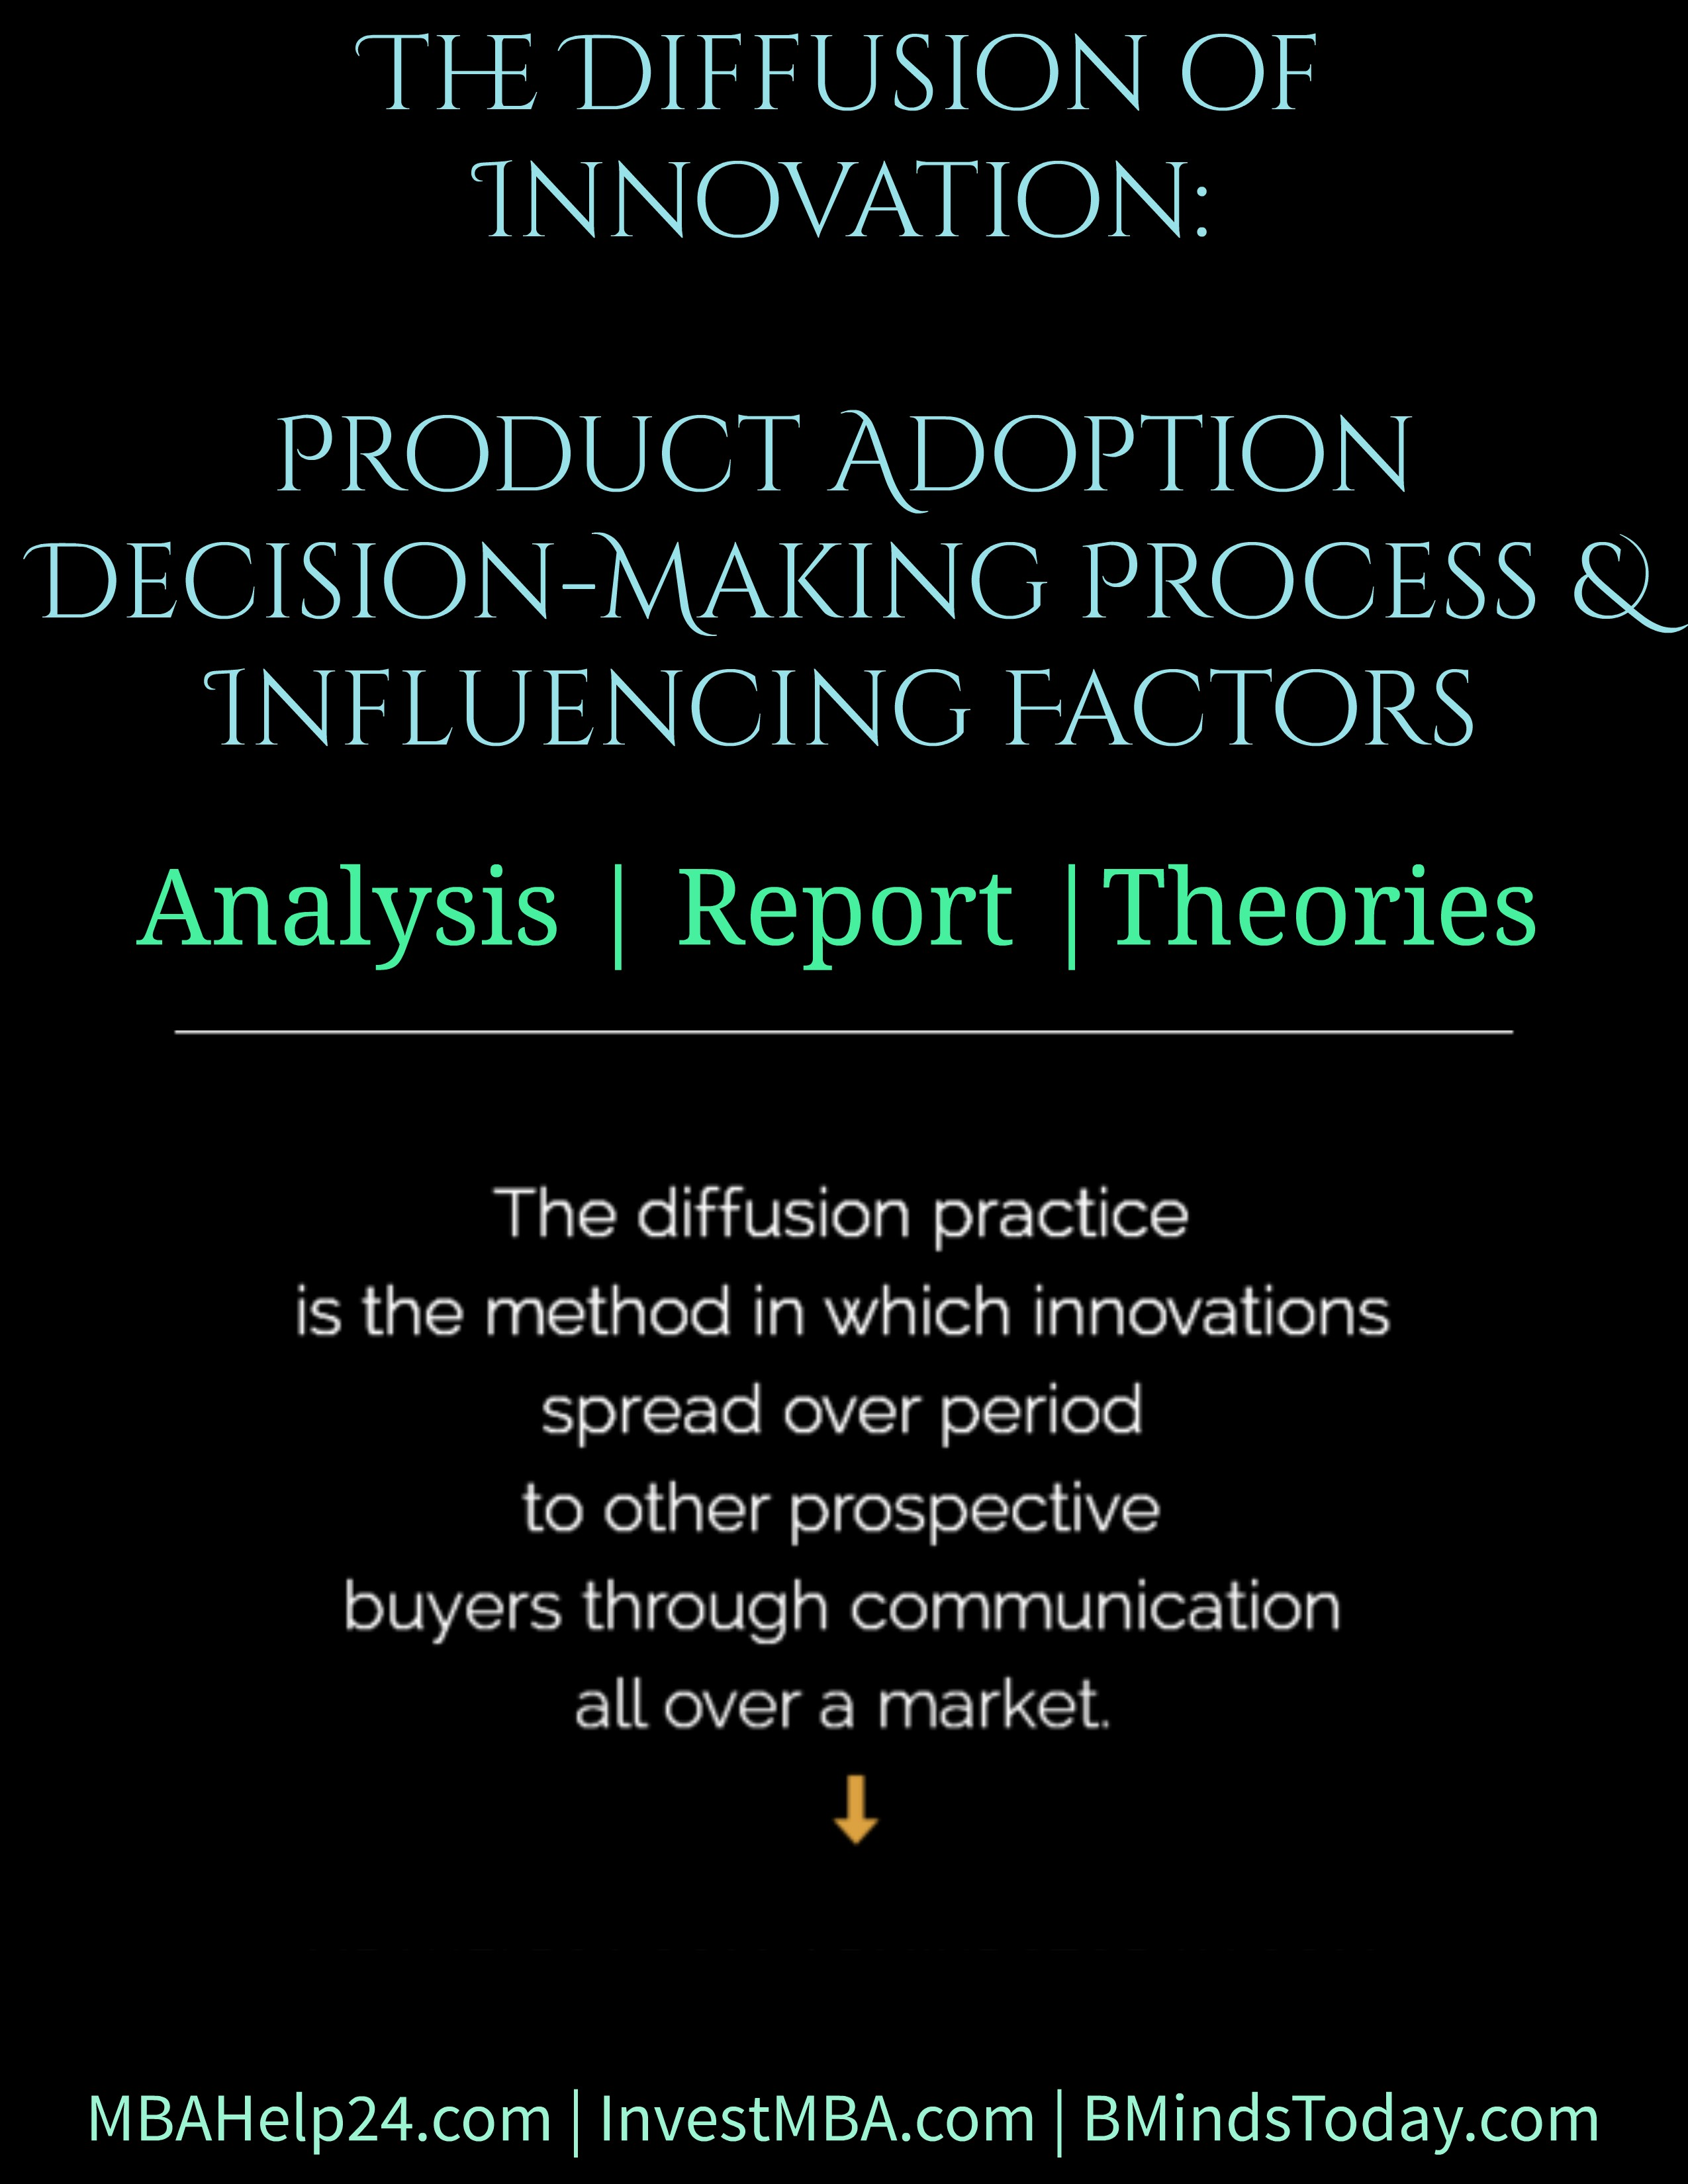 The Diffusion of Innovation: Product Adoption Decision-Making Process & Influencing Factors diffusion The Diffusion of Innovation | Product Adoption | Decision-Making & Influencing Factors The Diffusion of Innovation Product Adoption Decision Making Process and Influencing Factors diffusion of innovation | product adoption Diffusion of Innovation | Product Adoption The Diffusion of Innovation Product Adoption Decision Making Process and Influencing Factors